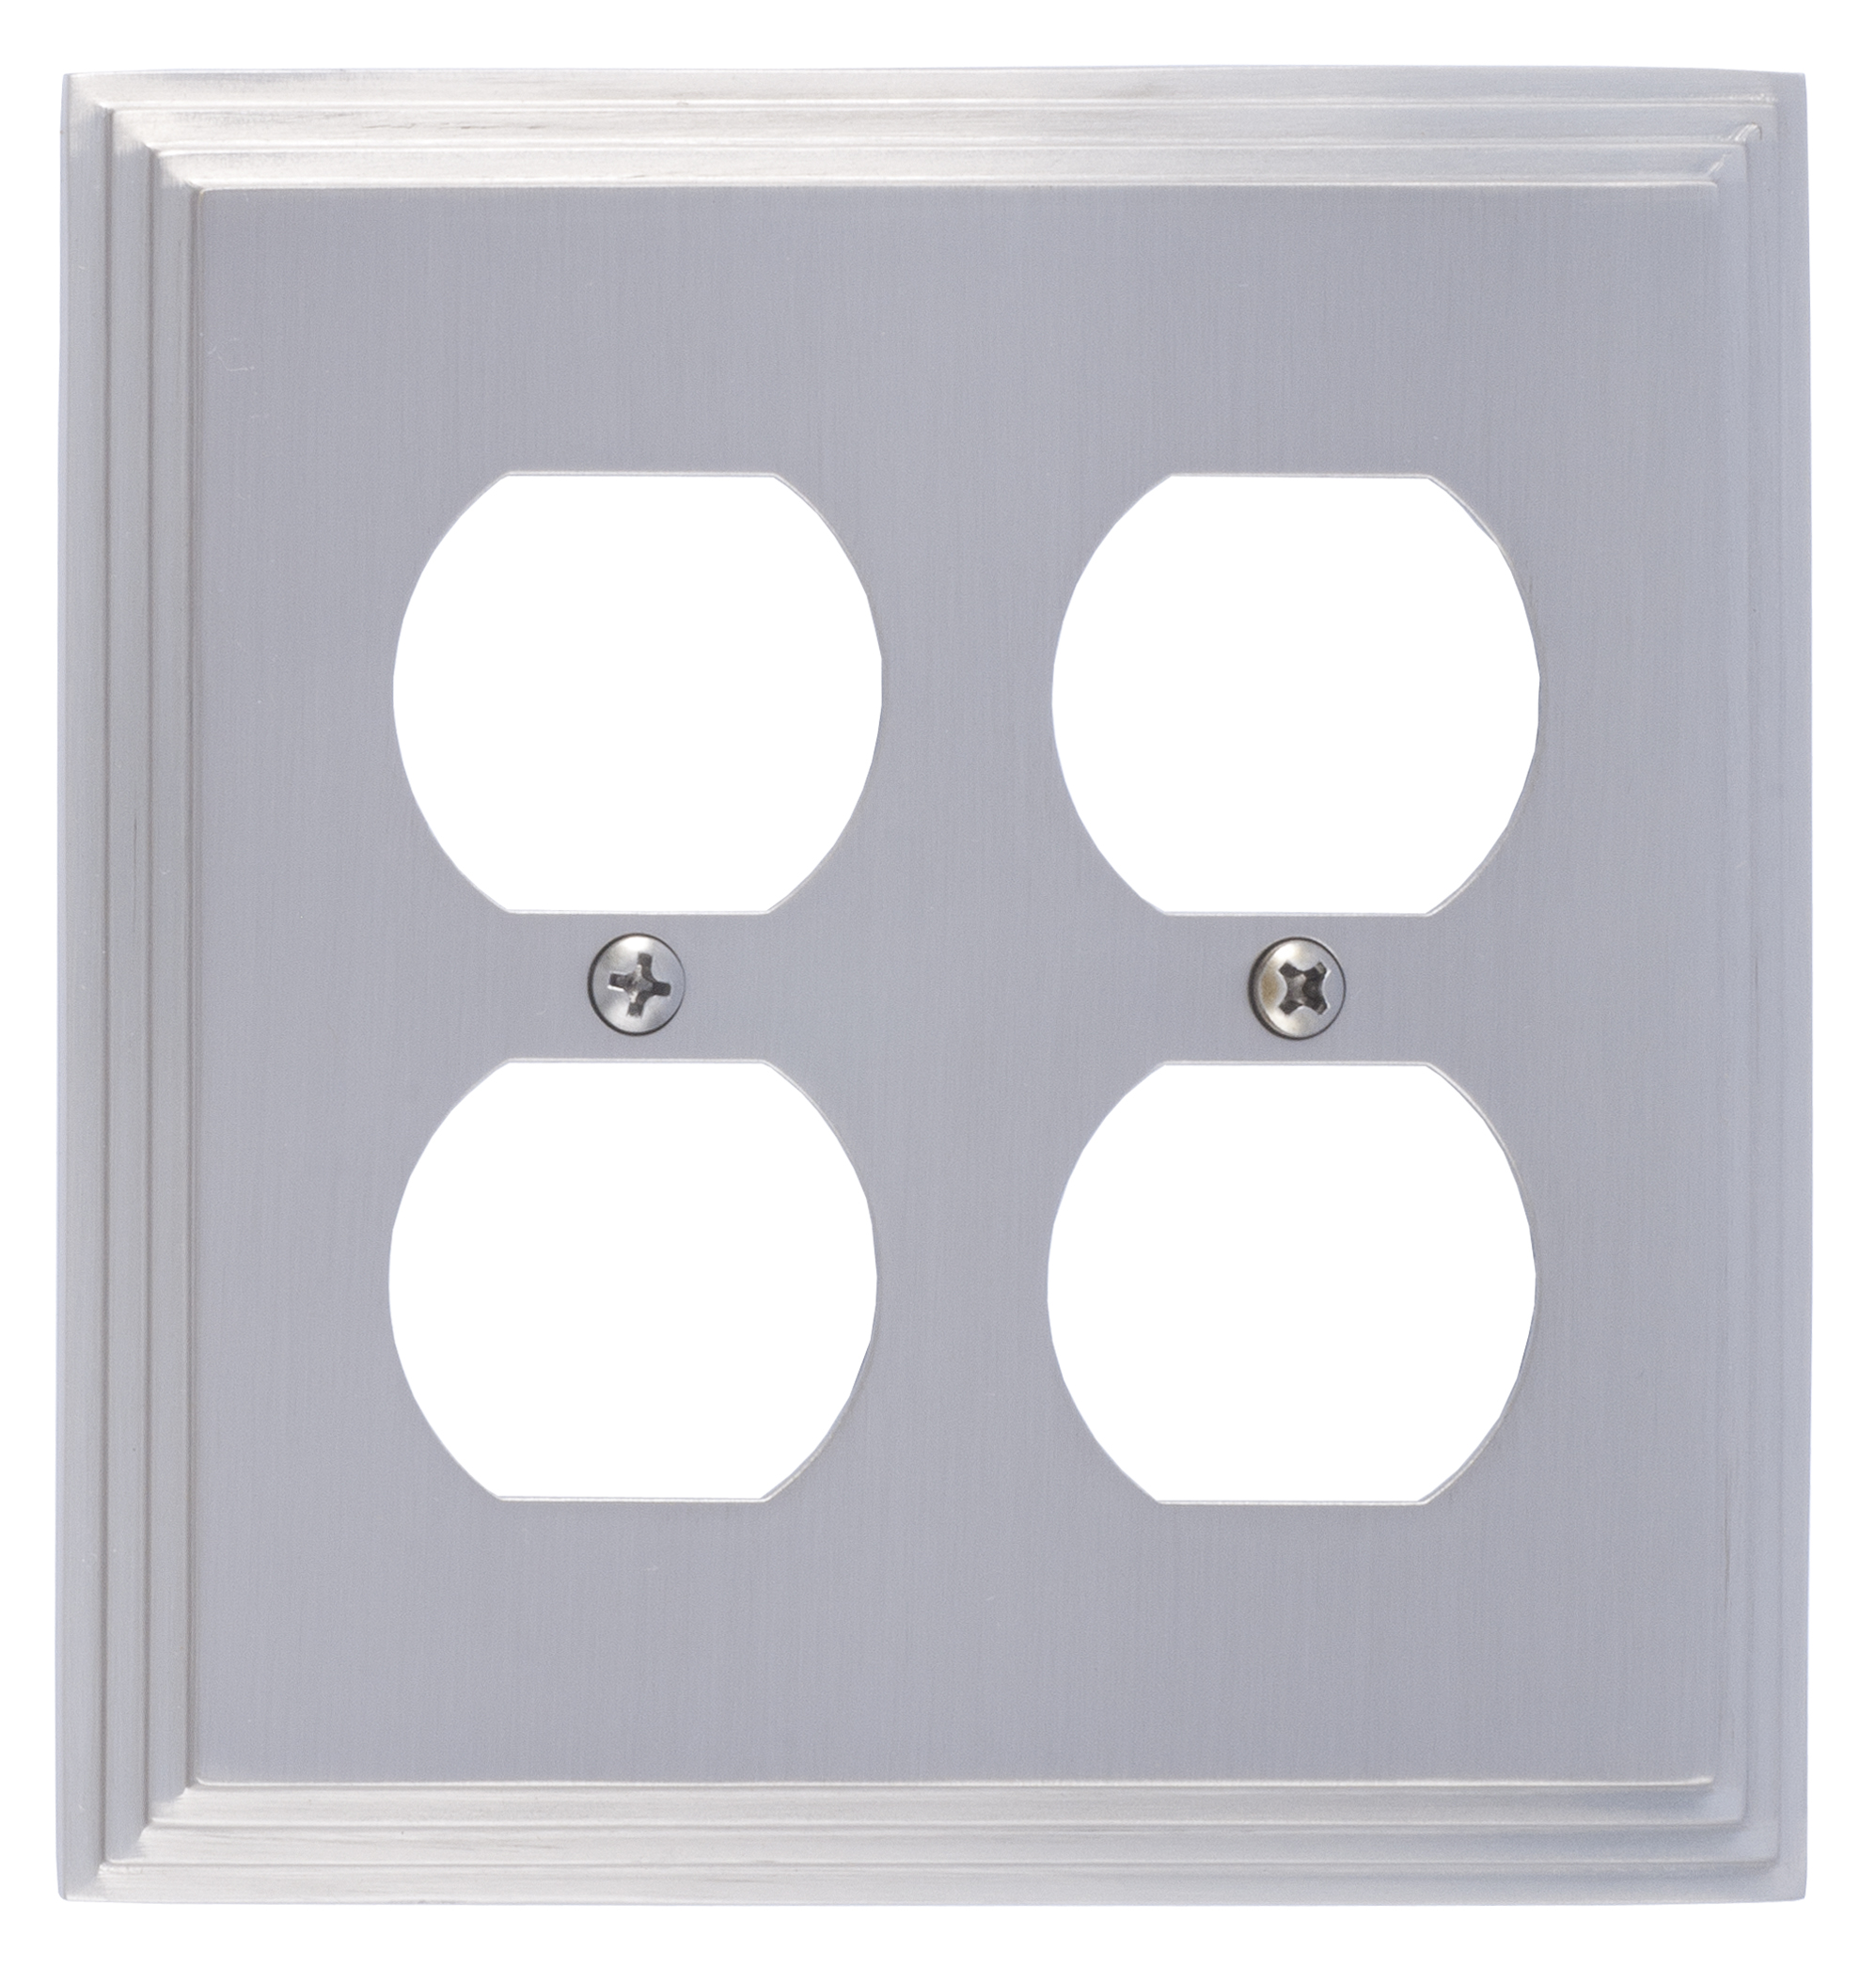 Arts and crafts switch plate covers - Arts Crafts Switch Plates